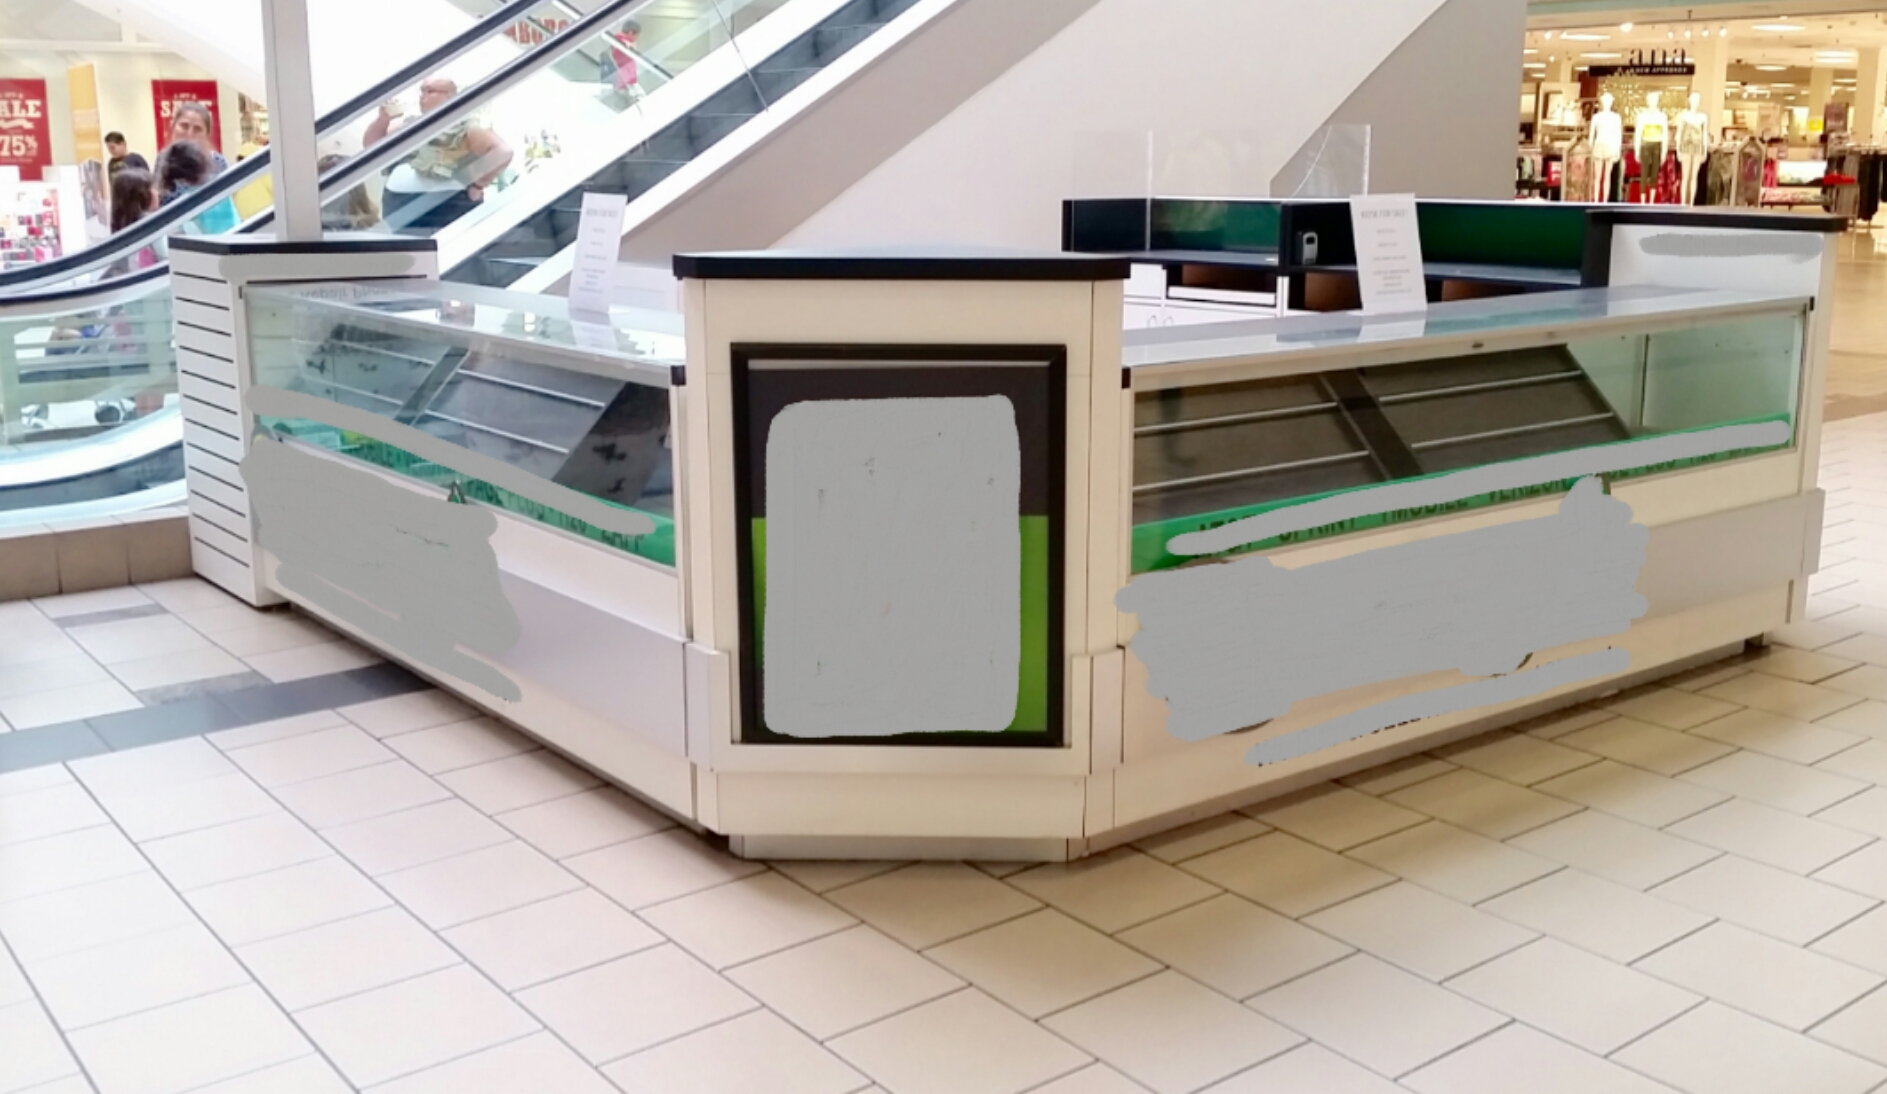 Sale Counter Design Indoor Mall Retail Kiosks Full Set Mobile Phones Sales